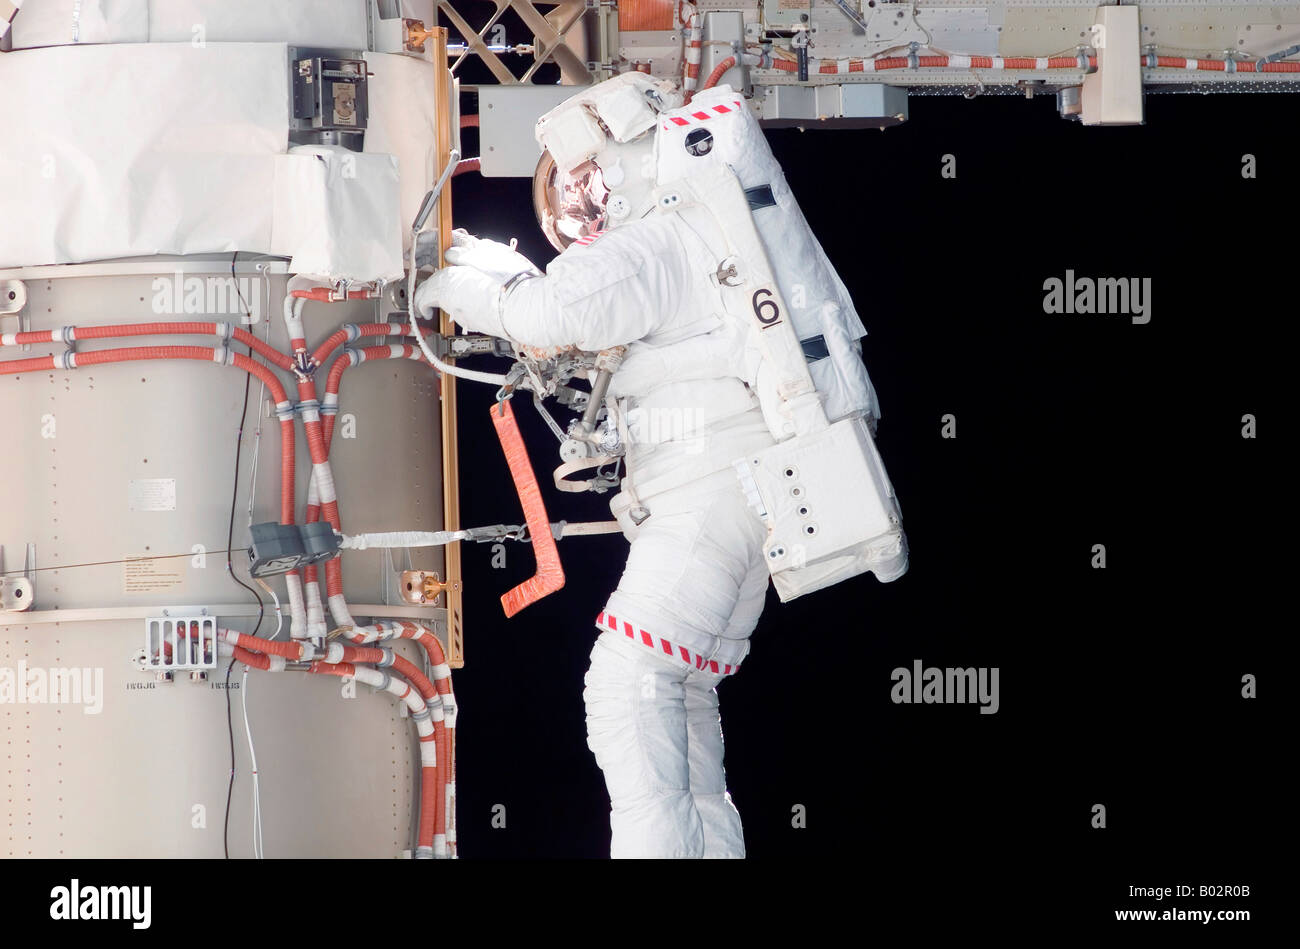 Astronaut partcipating in extravehicular activity. - Stock Image